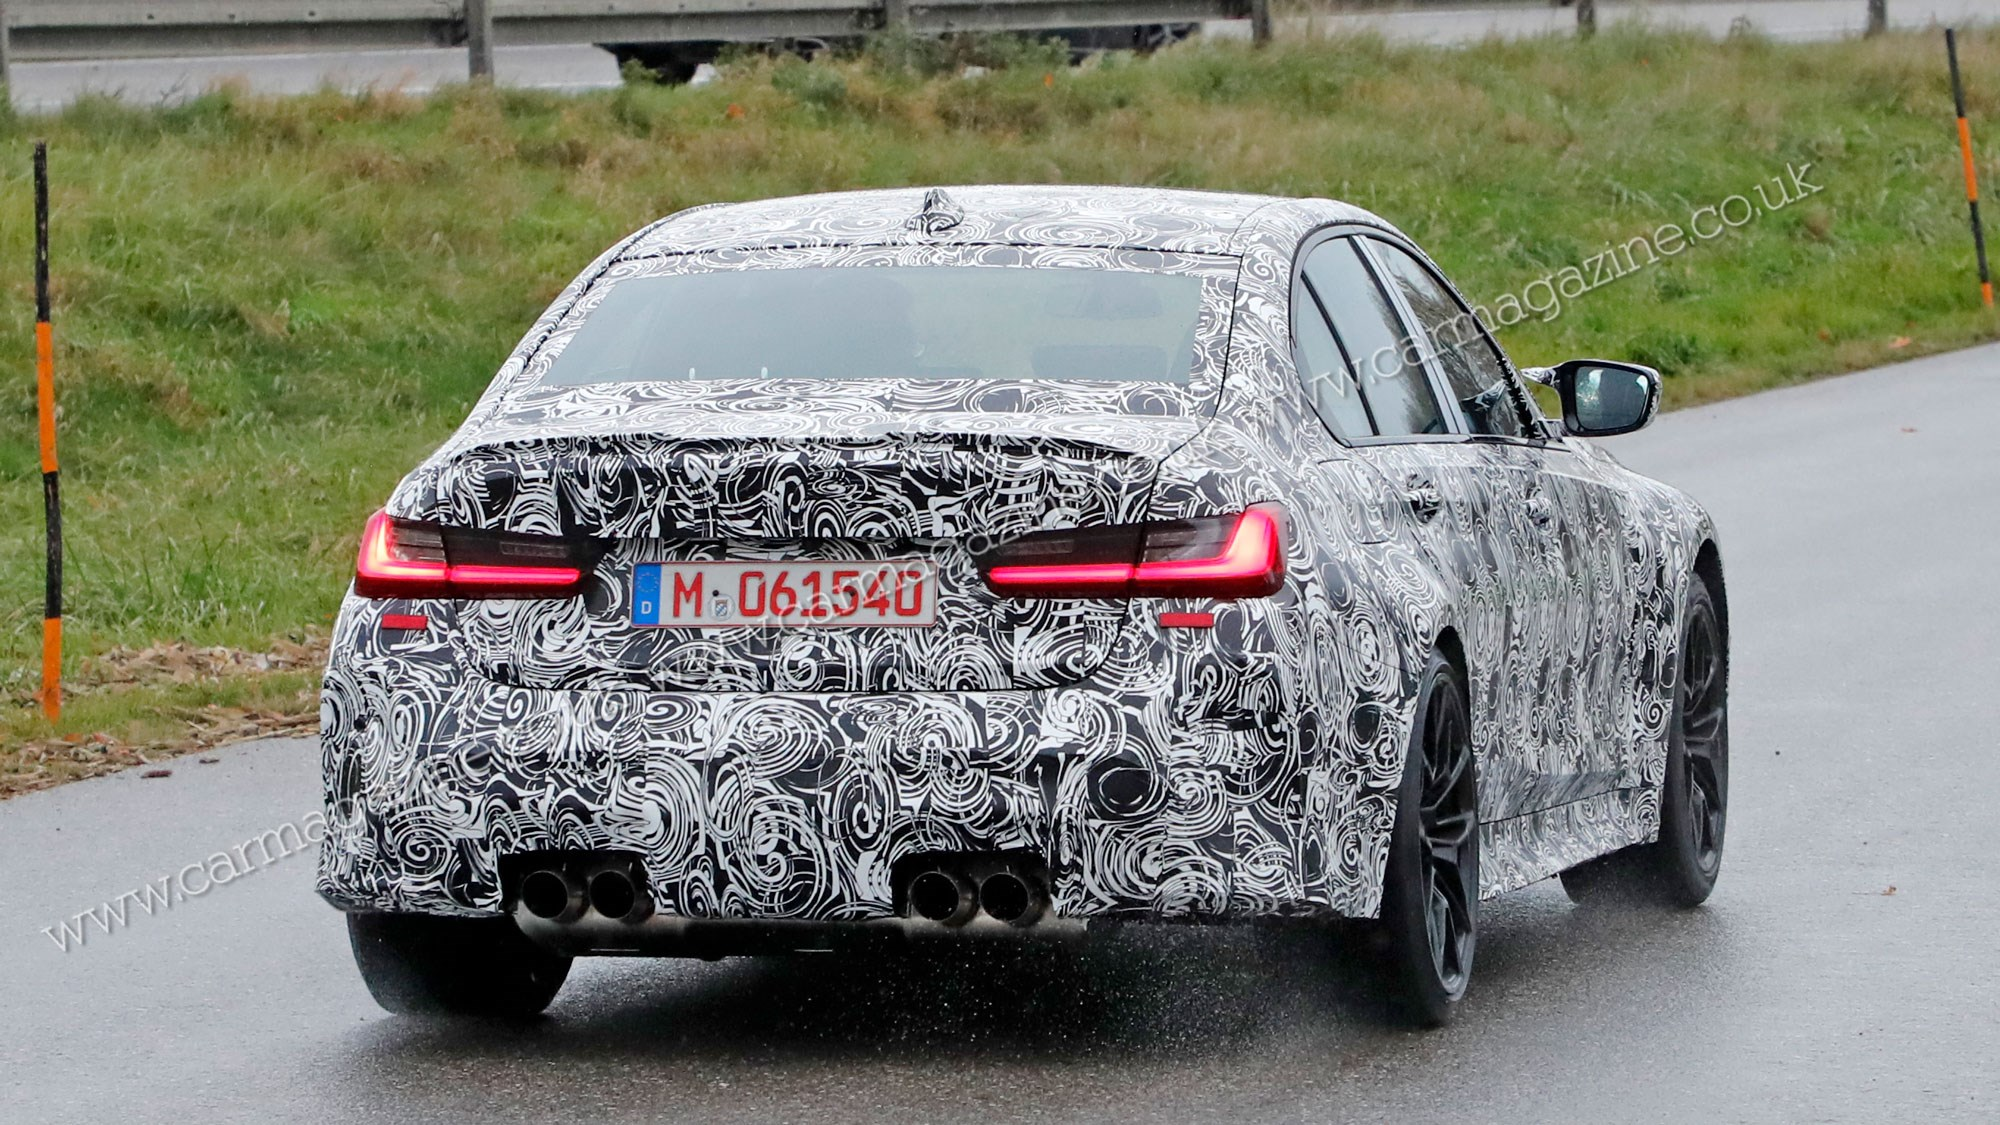 New 2020 BMW M3: fresh pictures of hot 3-series